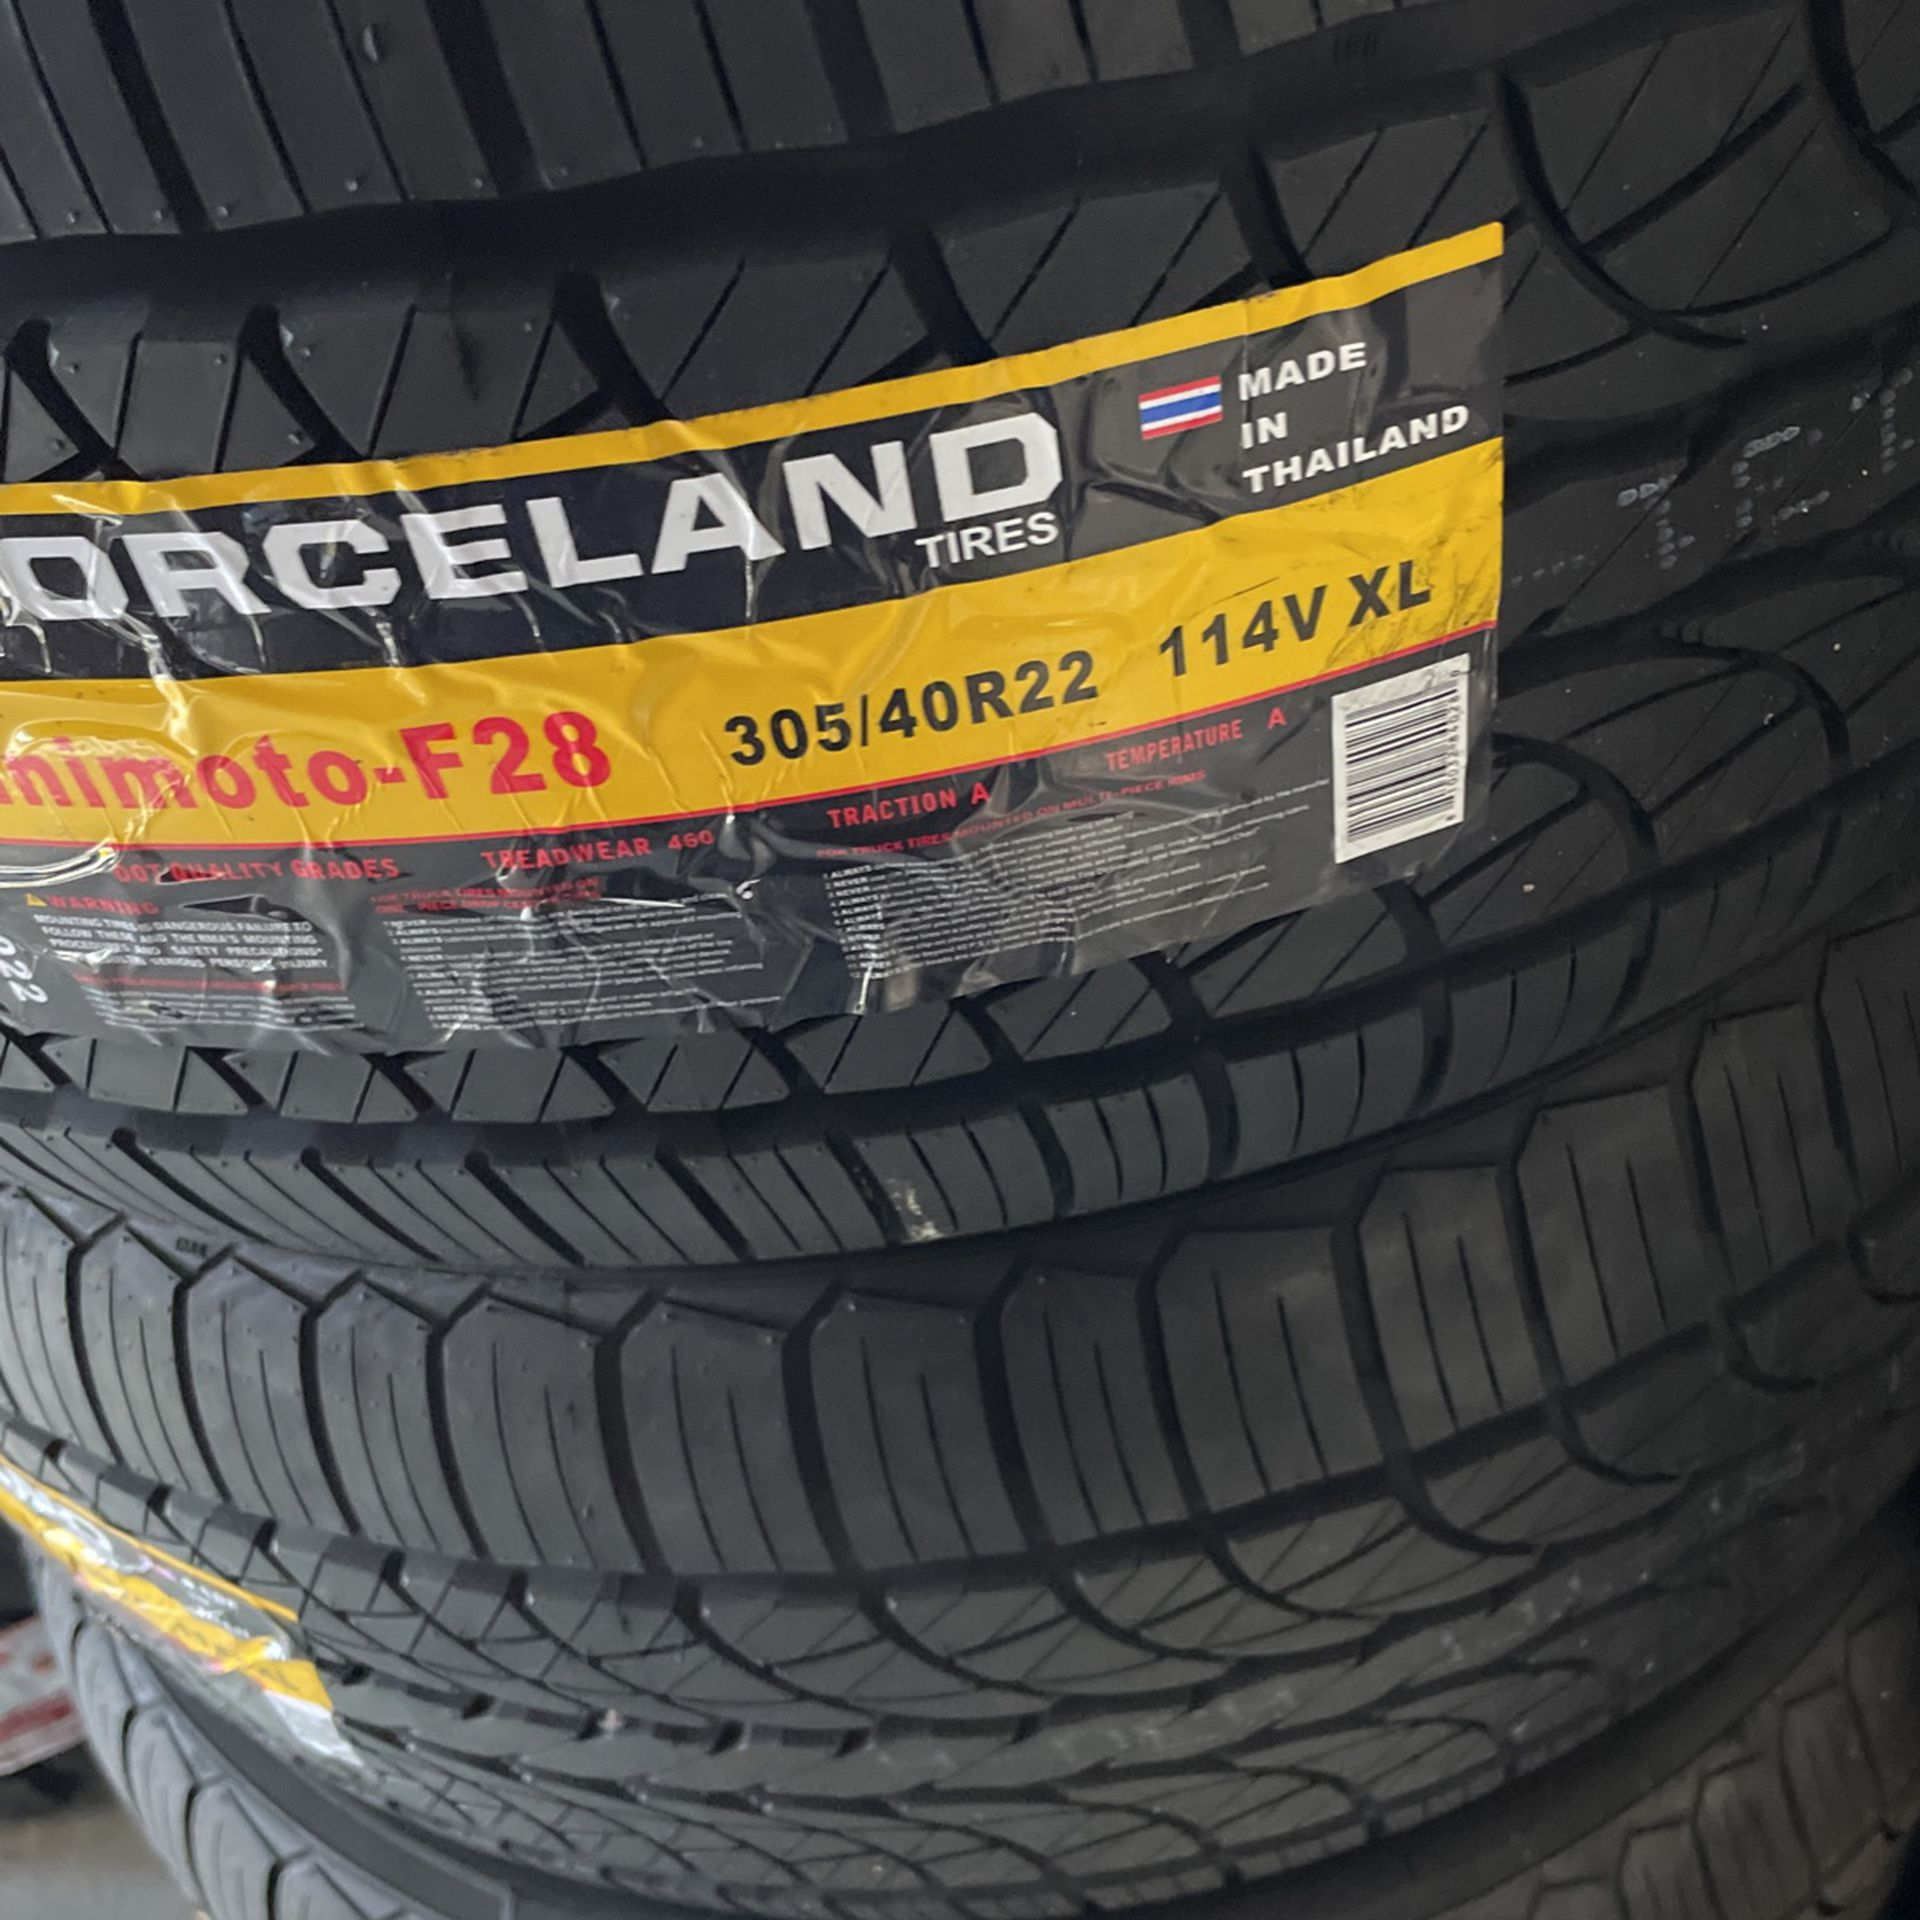 Selling 4 .. 305 40 R 22 Force All Season tire's for $560 for the set installed and balanced  All NEW tire's come with a 1 year Road hazard warranty a